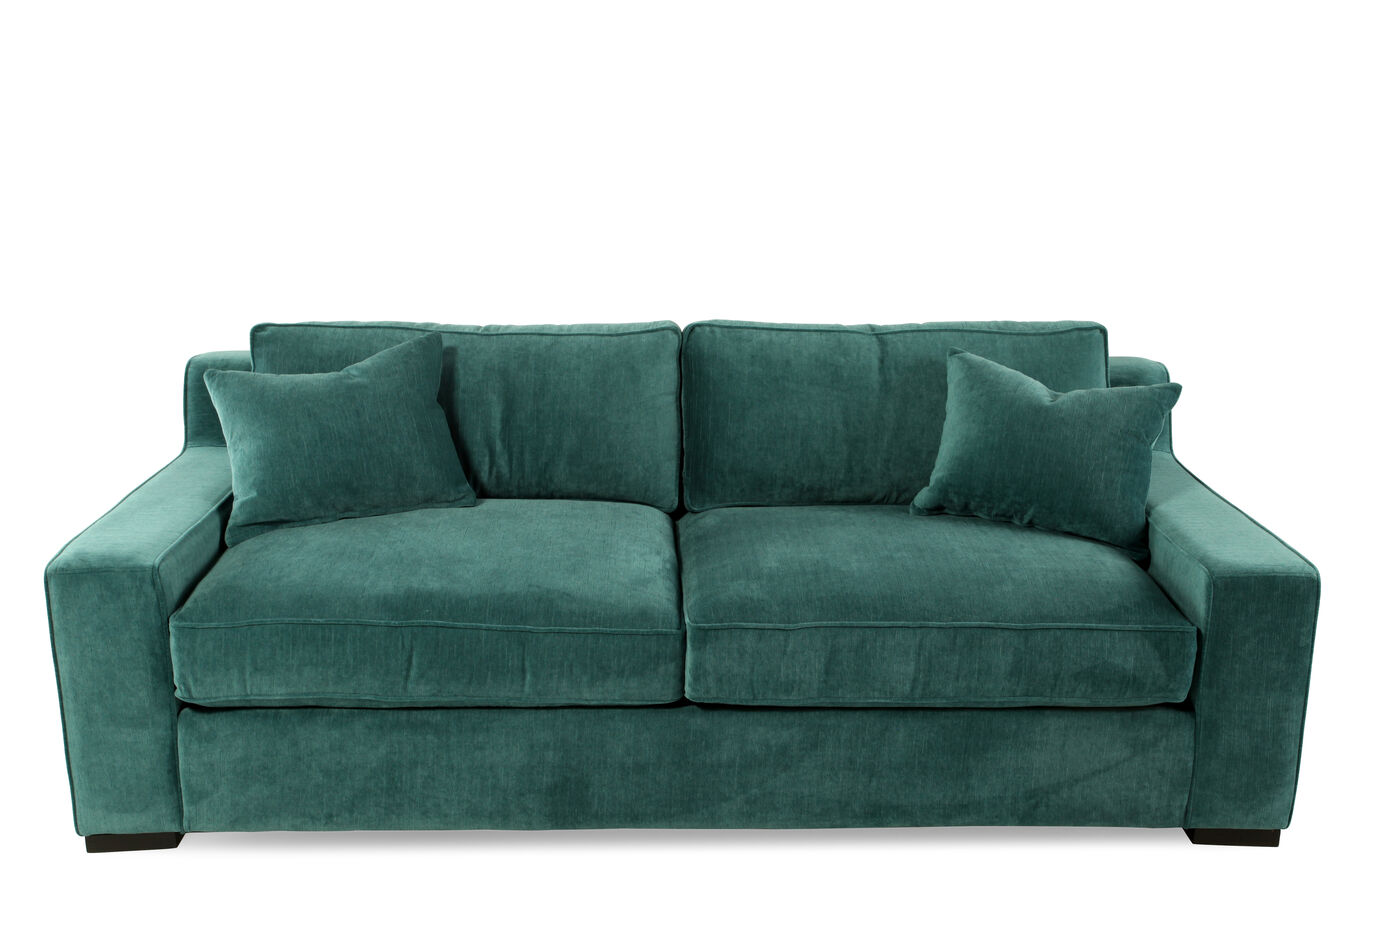 Low profile microfiber 38quot sofa in emerald green mathis for Emerald green sectional sofa